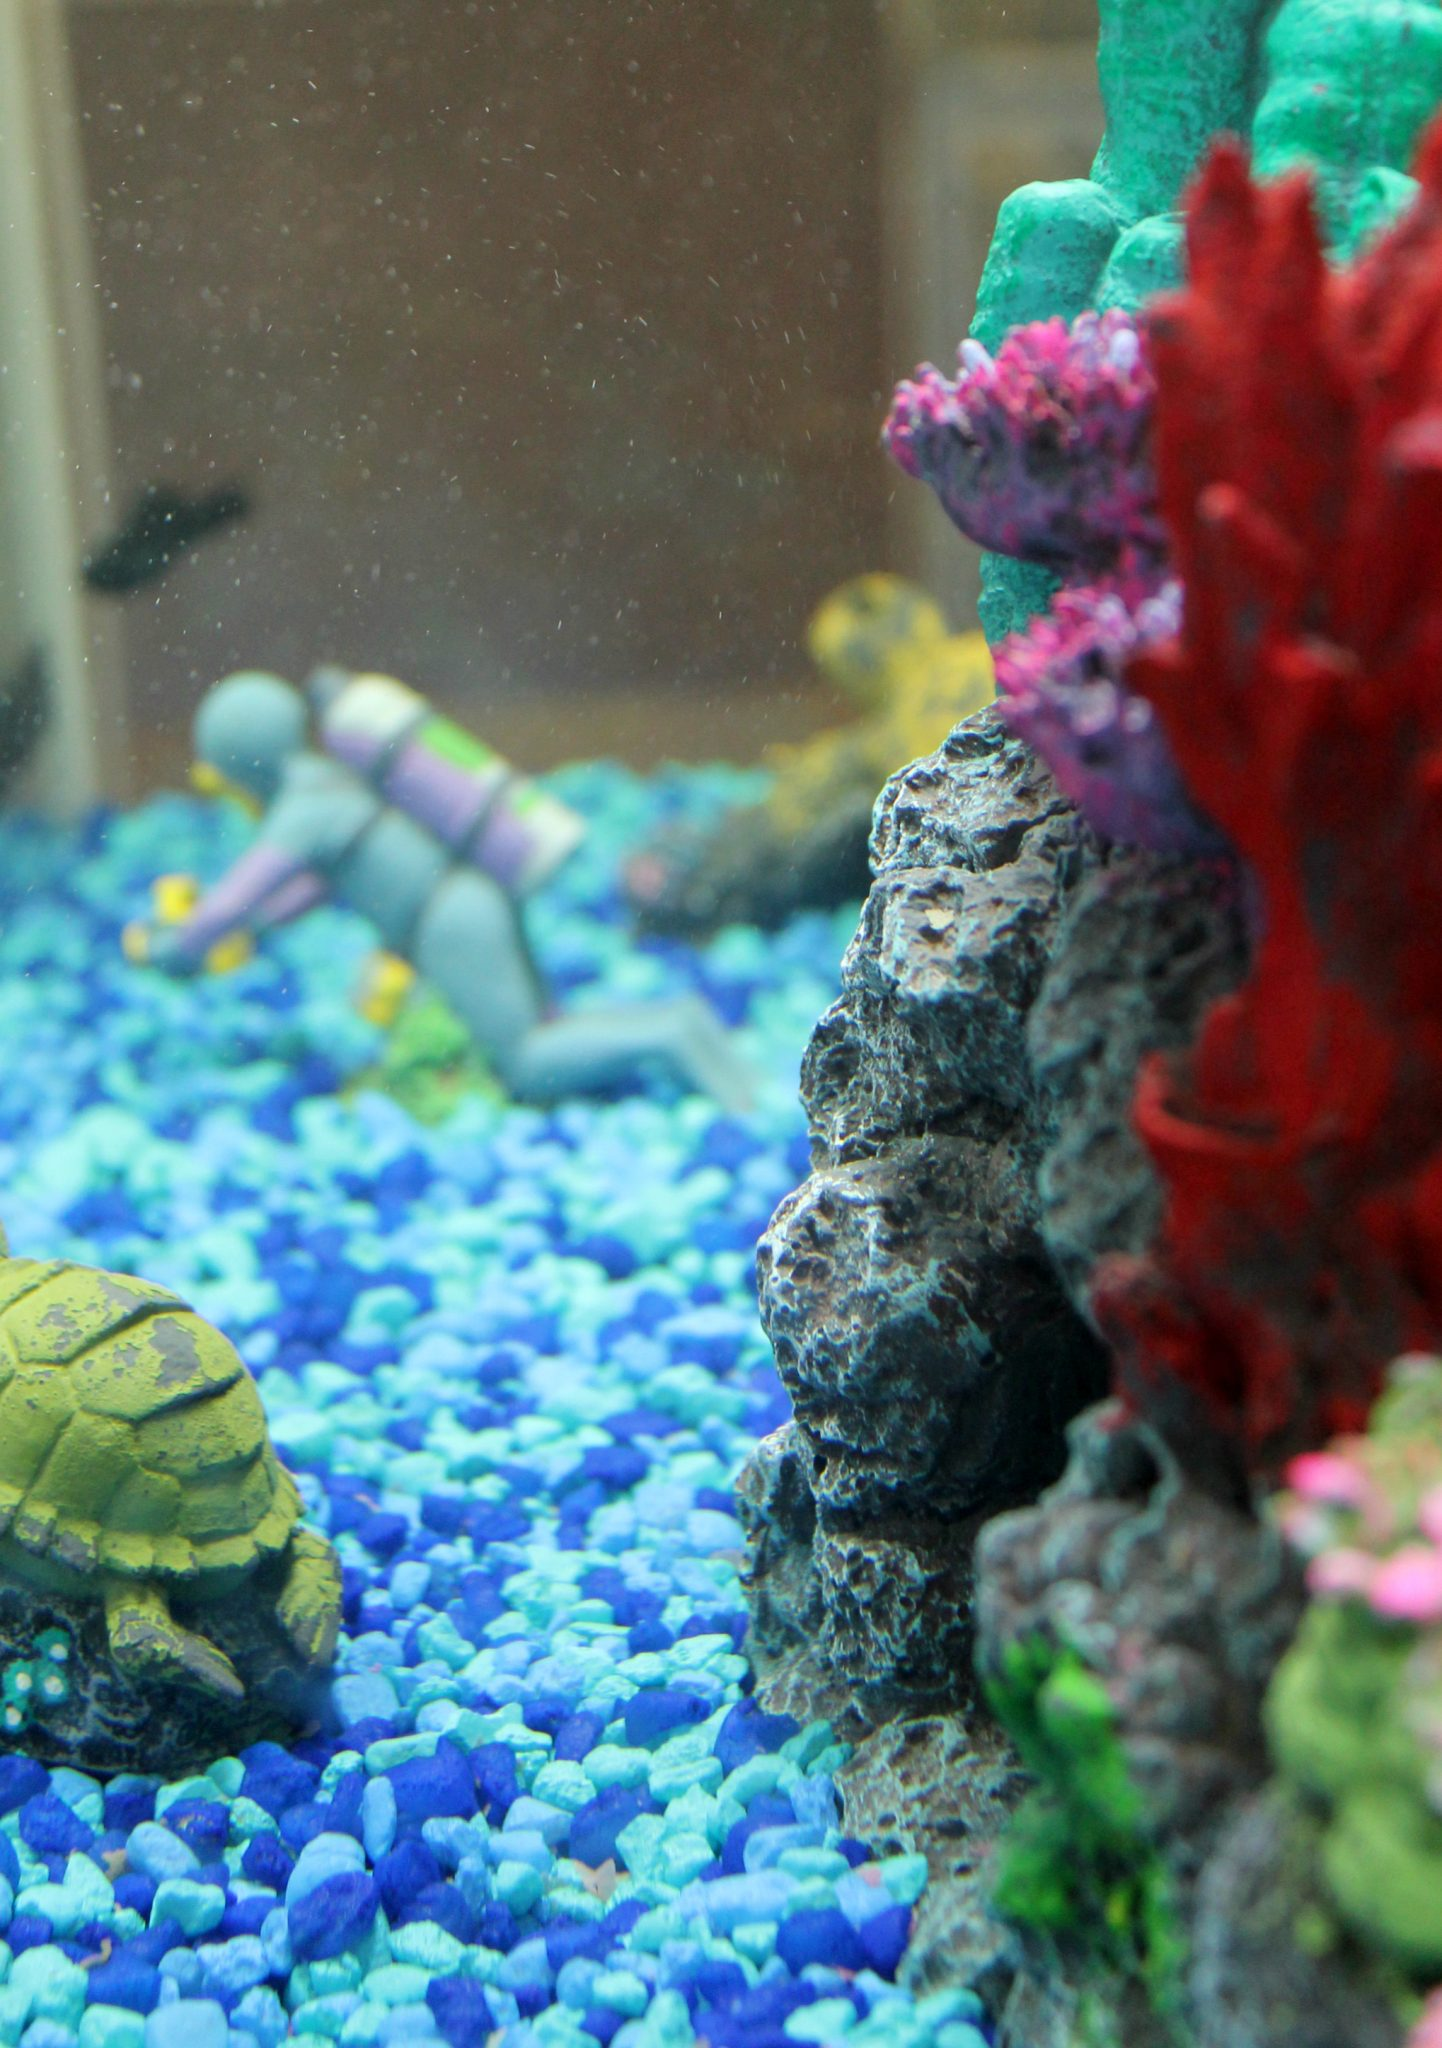 PetSmart Fish: Why our home will always have fish!